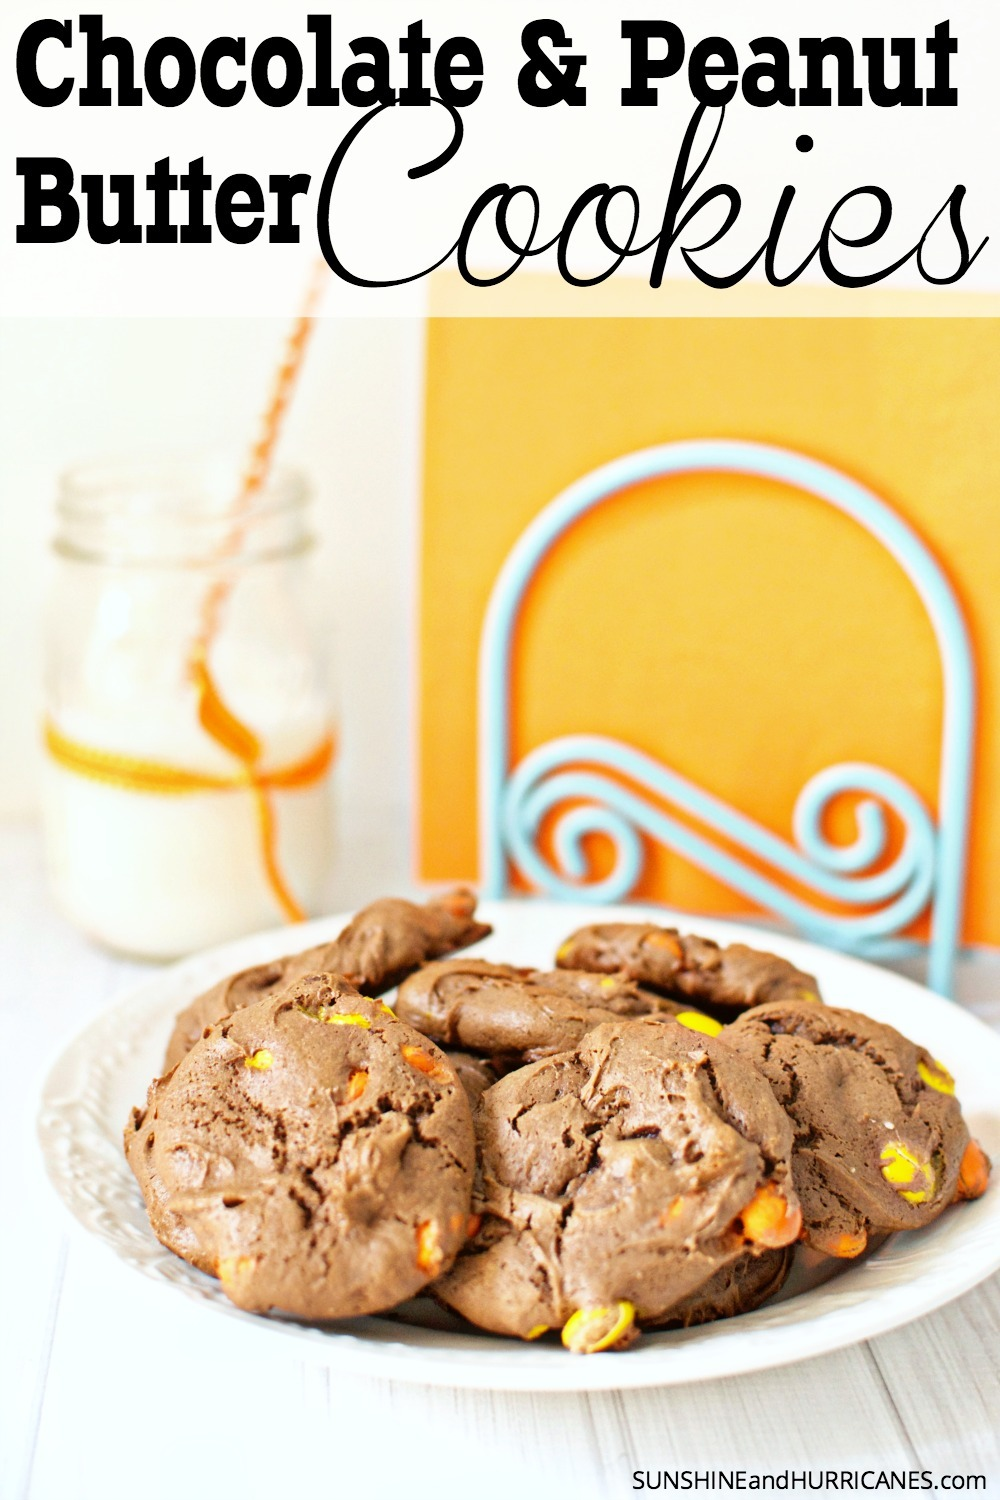 Do you love chocolate? Do you love peanut butter? Do you love them even more together? Then these super easy and quick peanut butter chocolate cookies are just for you! Totally addicting and even better with a tall glass of milk, this cookie recipe is a keeper!